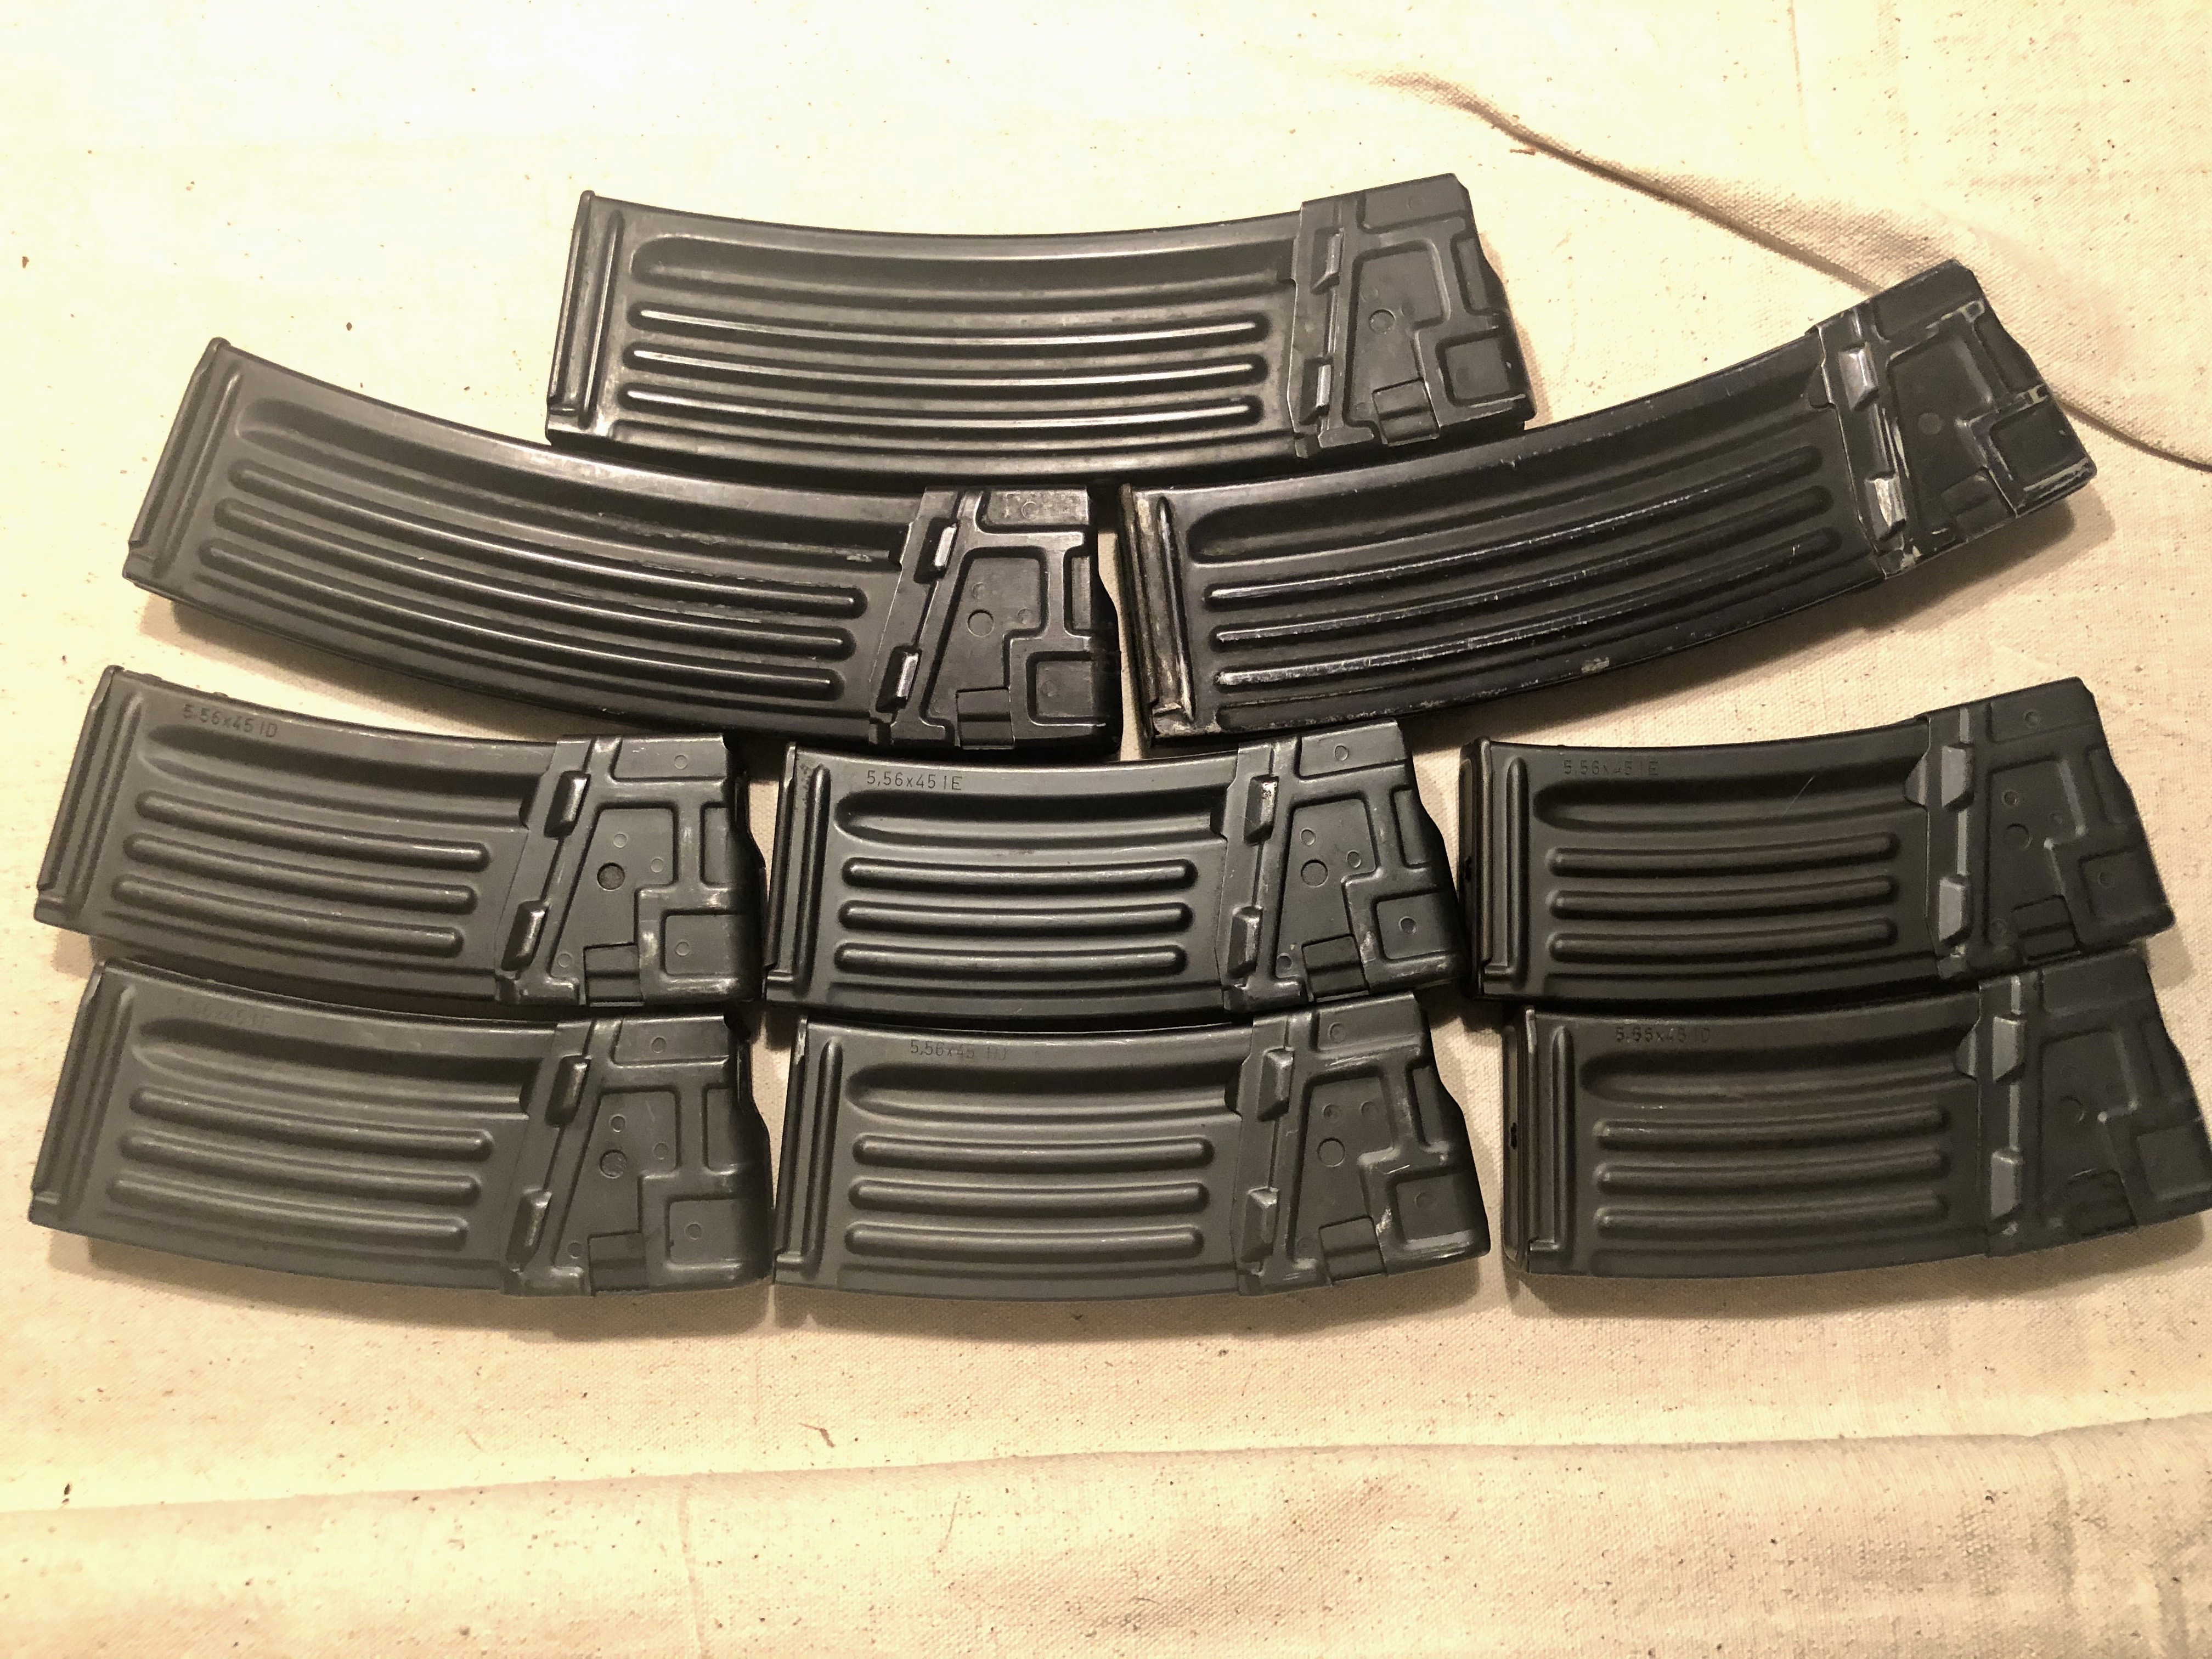 WTS: HK mags/KAC MP5 RAS/A2 stocks/cleaning kit-img_3250.jpg